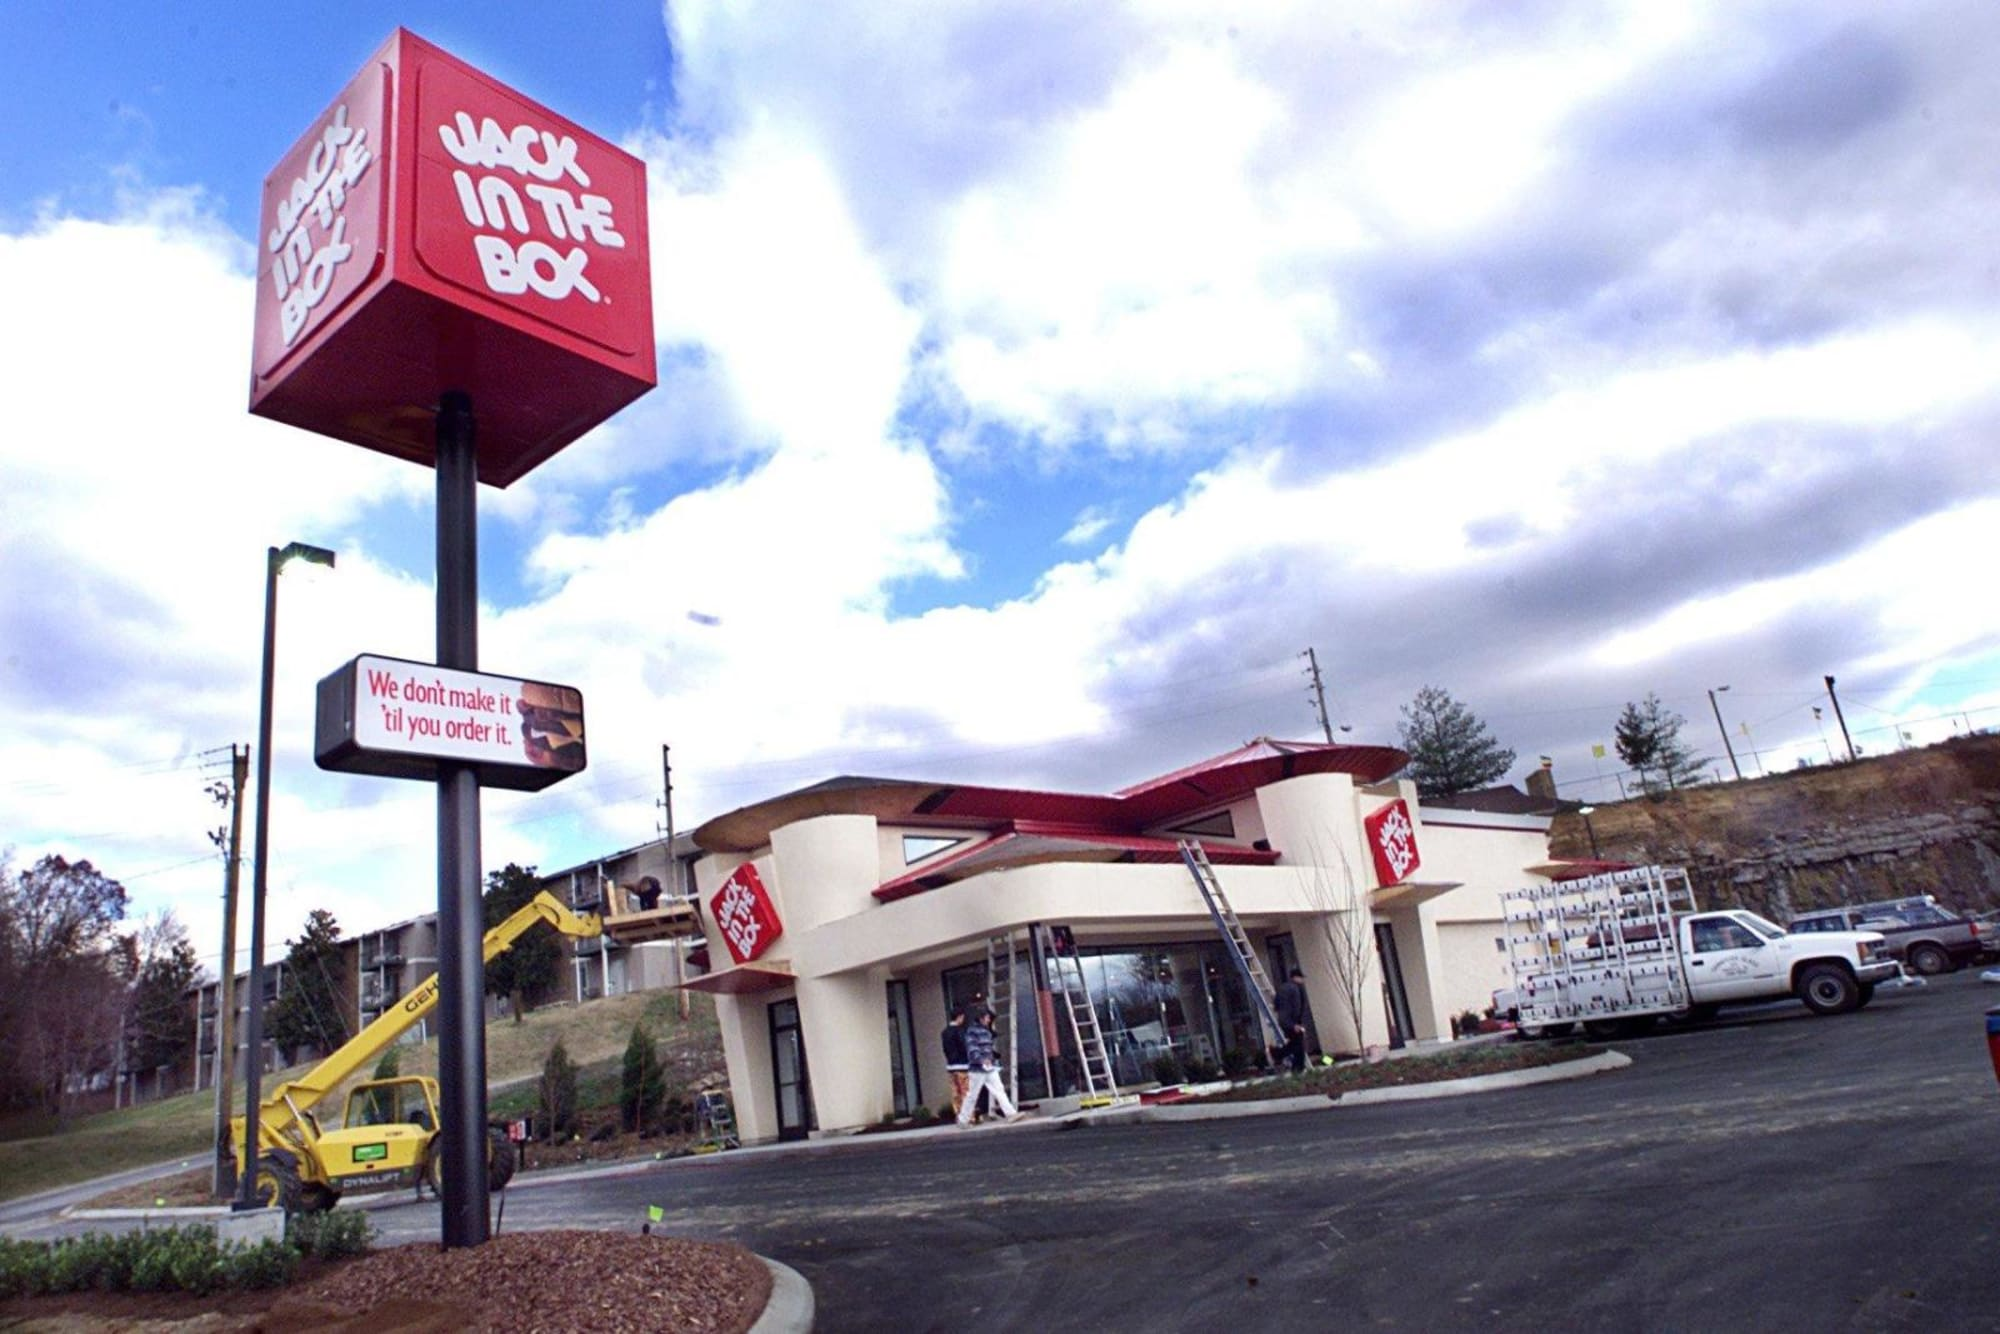 Are donut holes still at Jack in the Box?